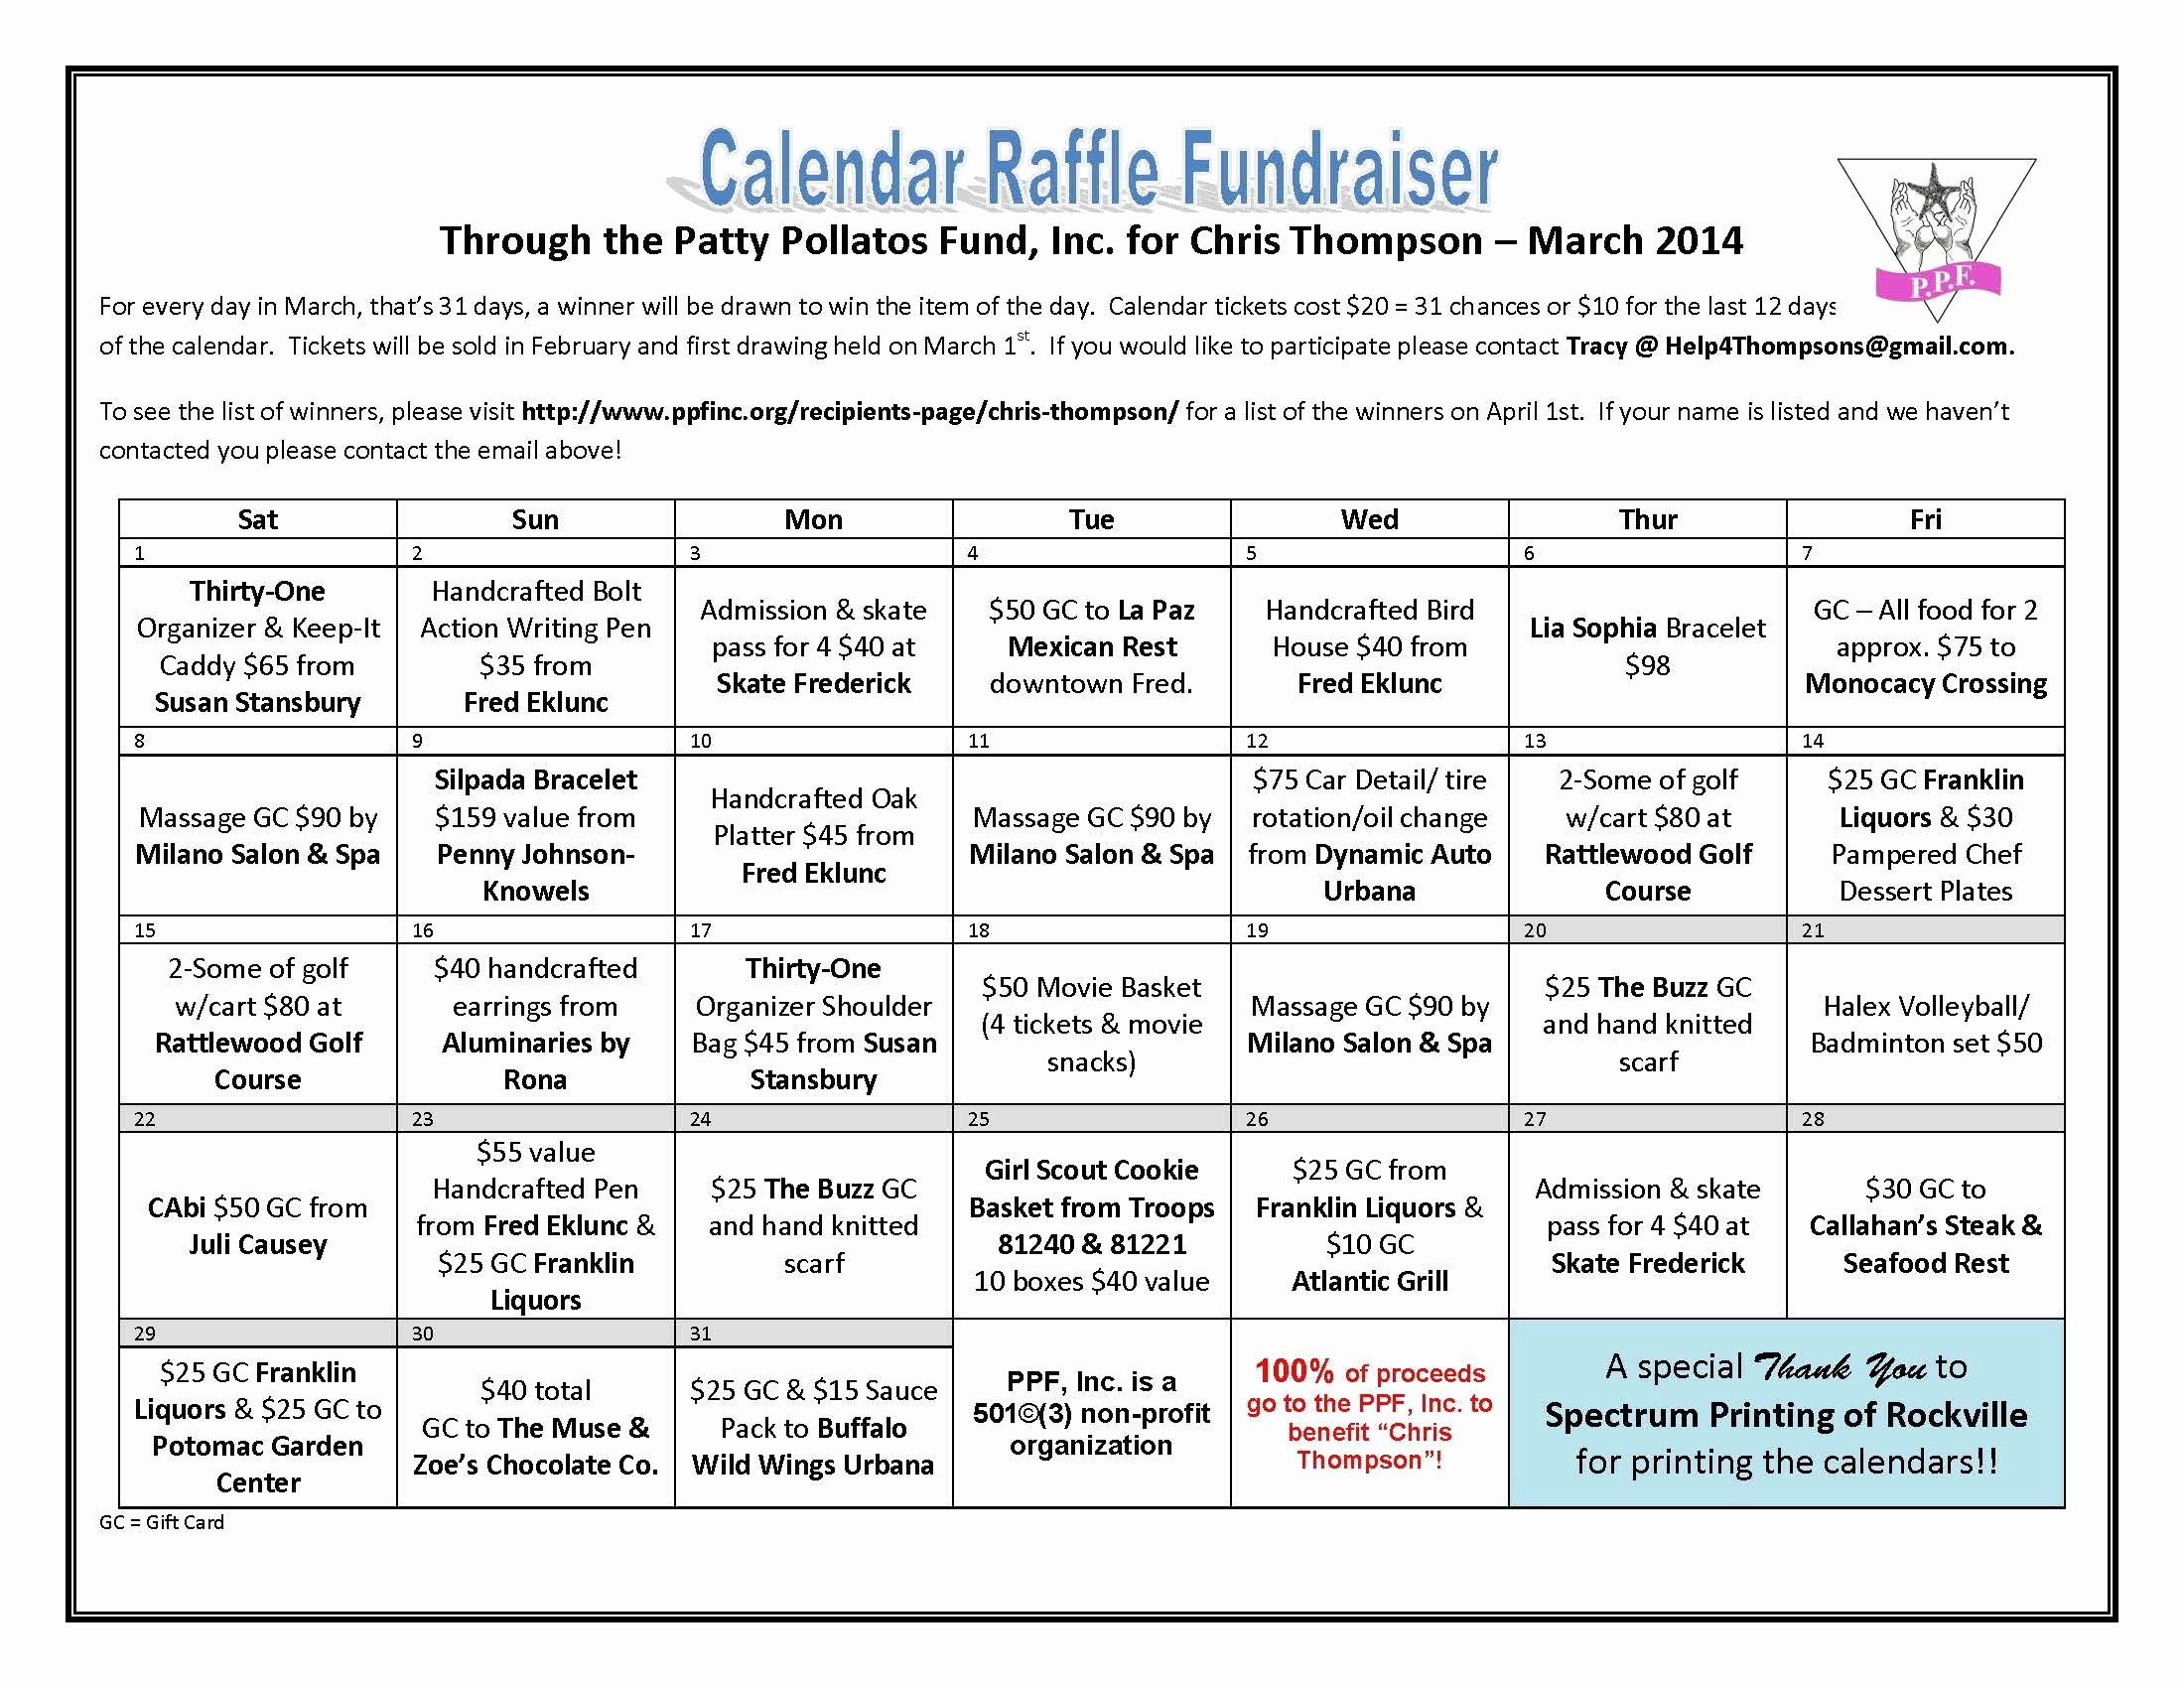 Lottery Ticket Fundraiser Template Beautiful Thompson Raffle Fundraiser Calendar Final